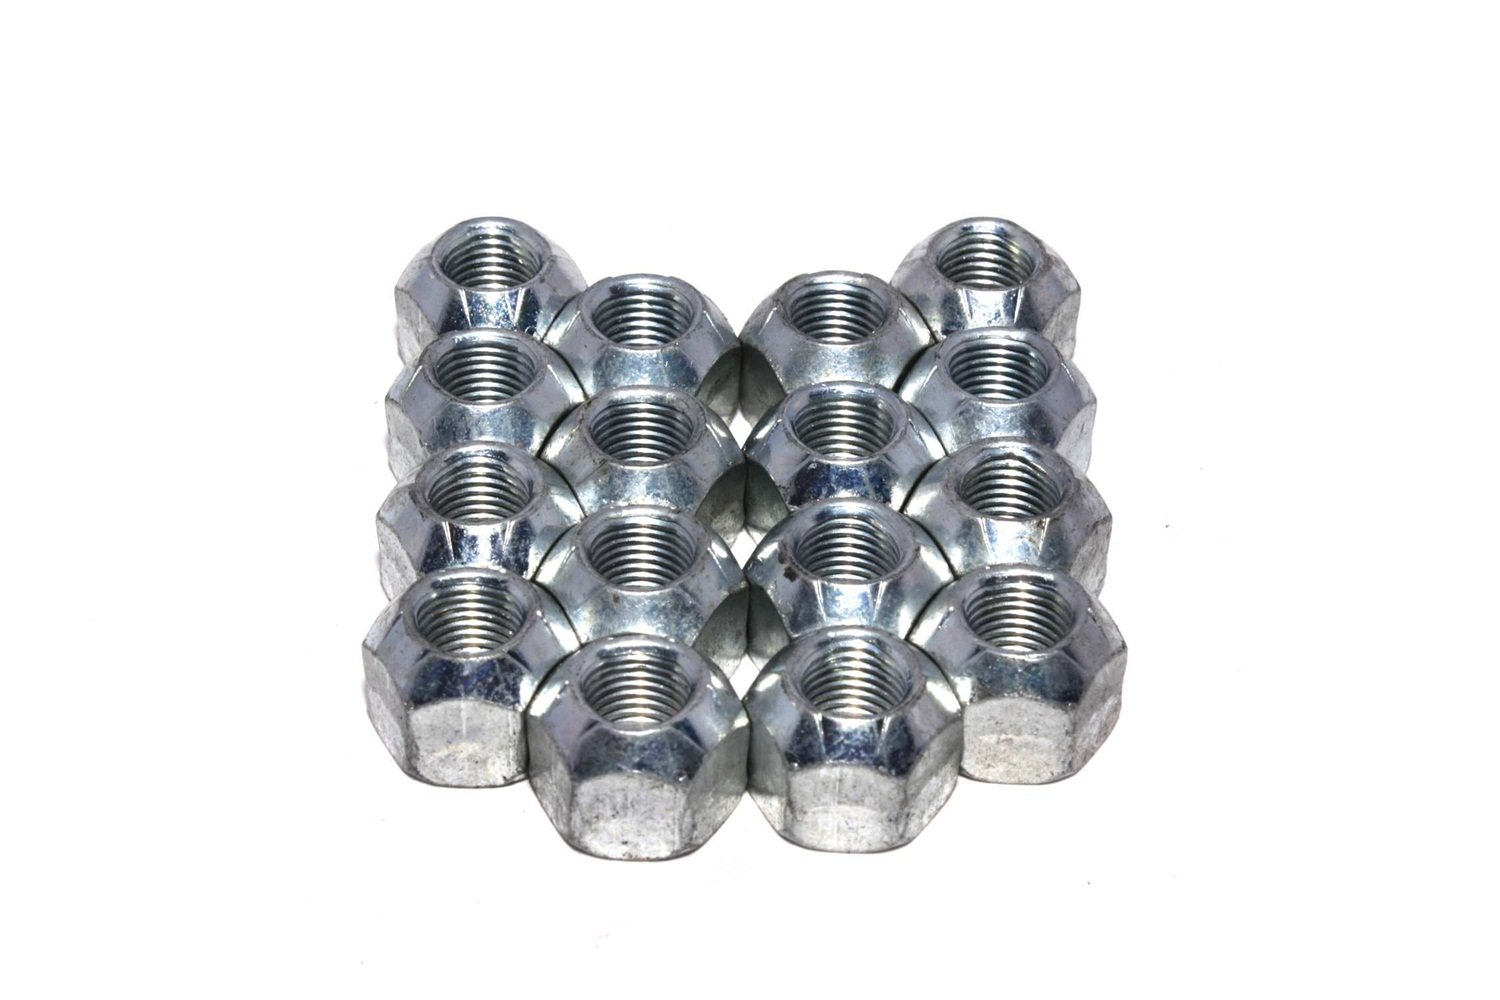 COMP Cams 1401N-16 Replacement Adjusting Nut for Magnum Rocker Arms and 7/16' Stud, (Set of 16)